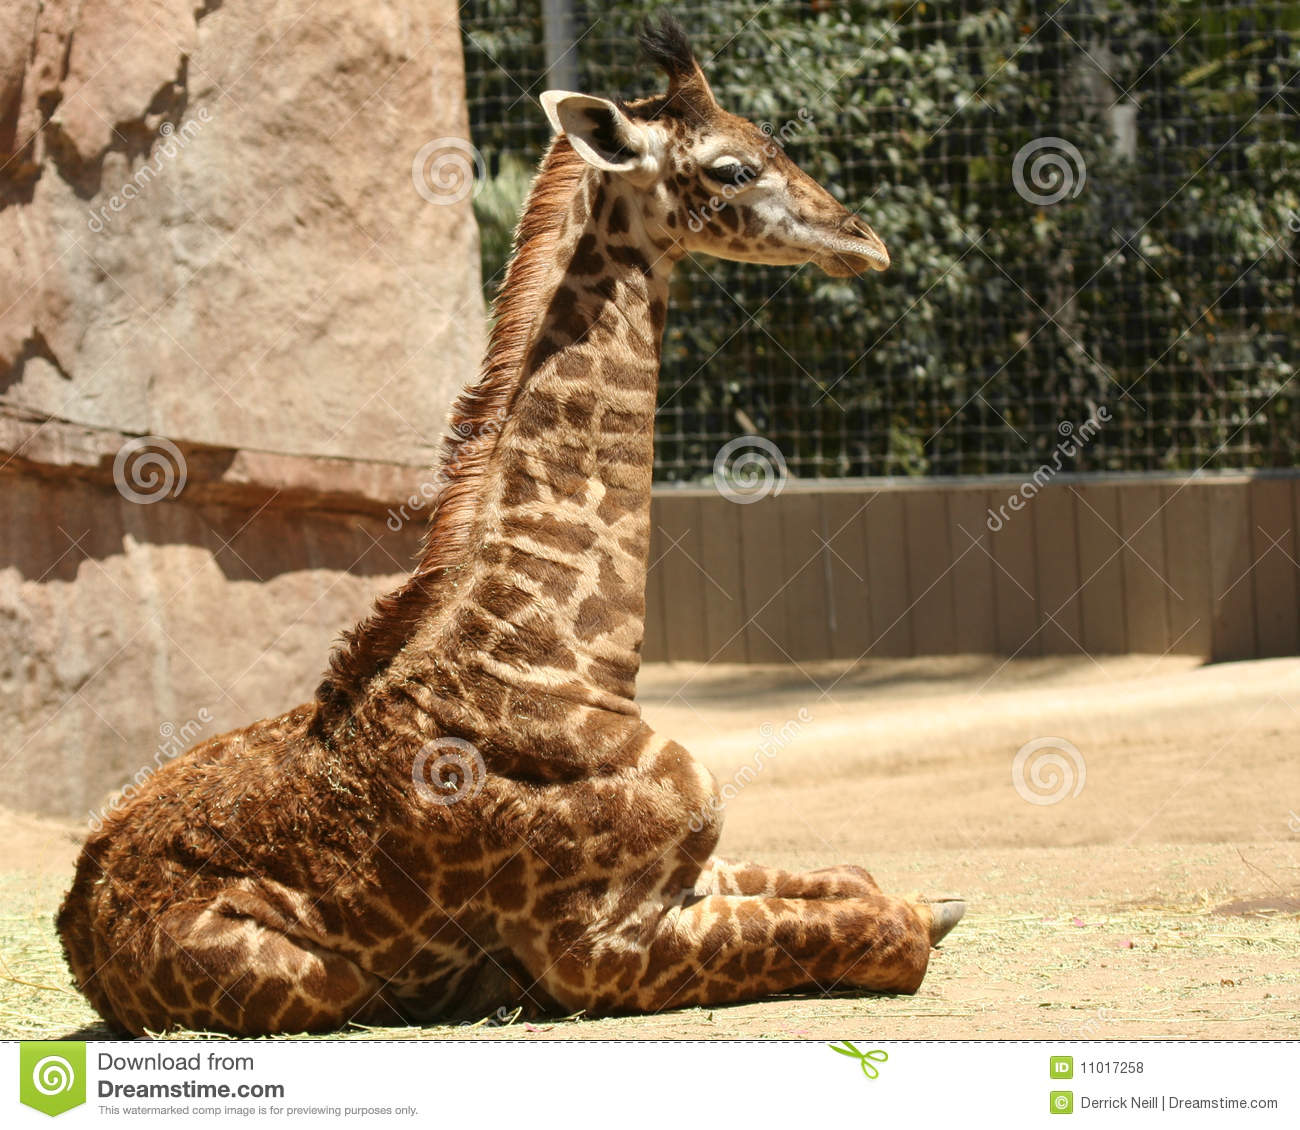 A Baby Giraffe in a Zoo